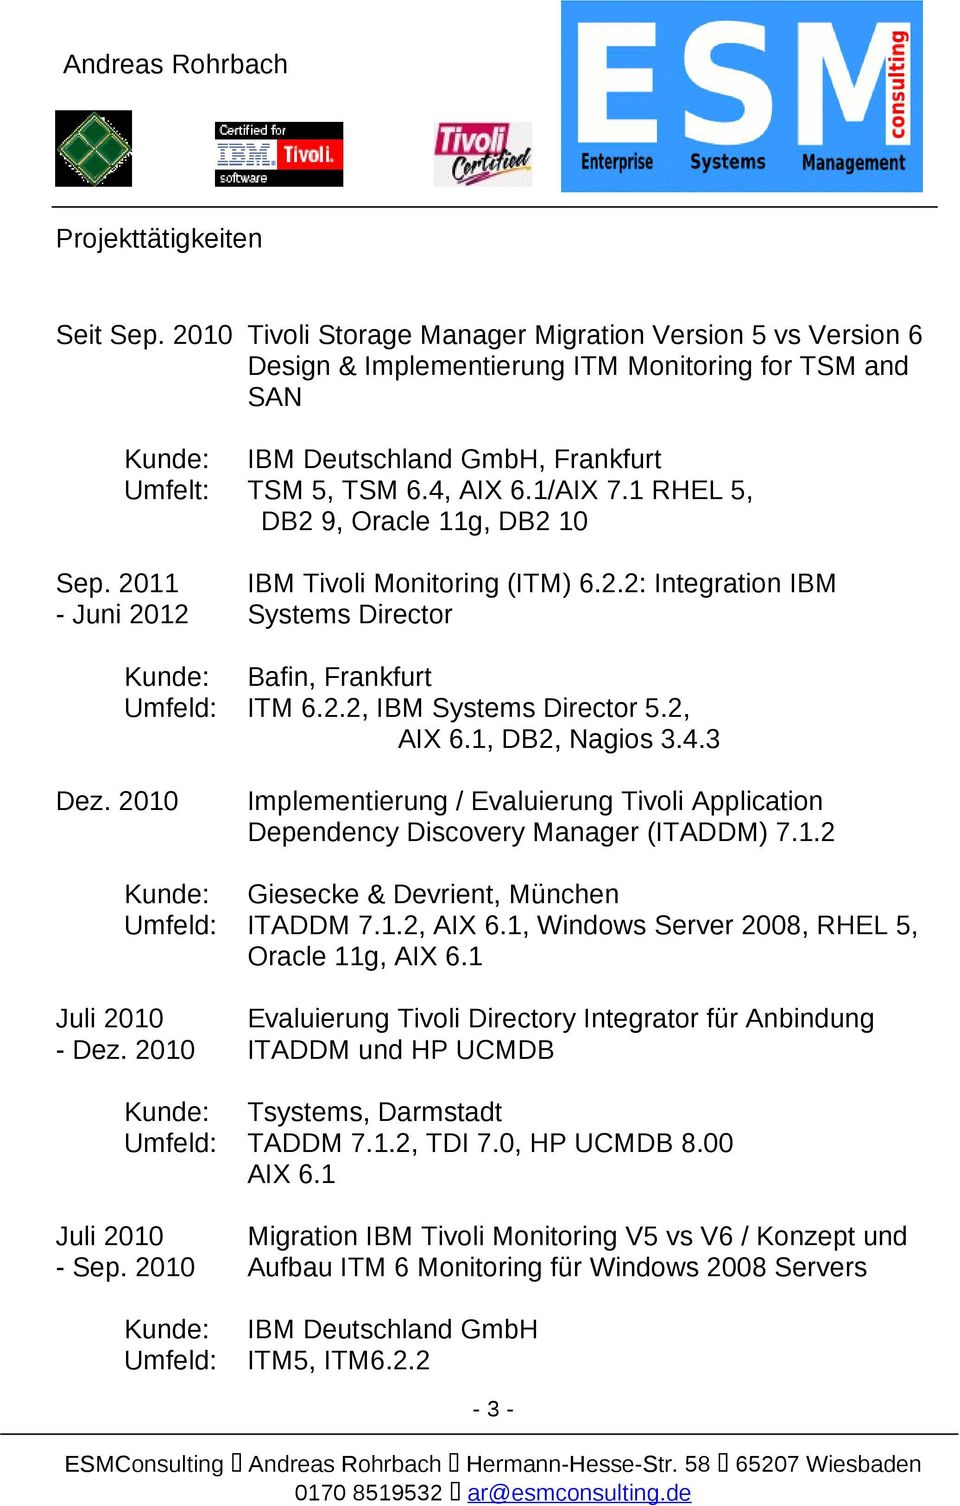 2, AIX 6.1, DB2, Nagios 3.4.3 Dez. 2010 Implementierung / Evaluierung Tivoli Application Dependency Discovery Manager (ITADDM) 7.1.2 Giesecke & Devrient, München ITADDM 7.1.2, AIX 6.1, Windows Server 2008, RHEL 5, Oracle 11g, AIX 6.